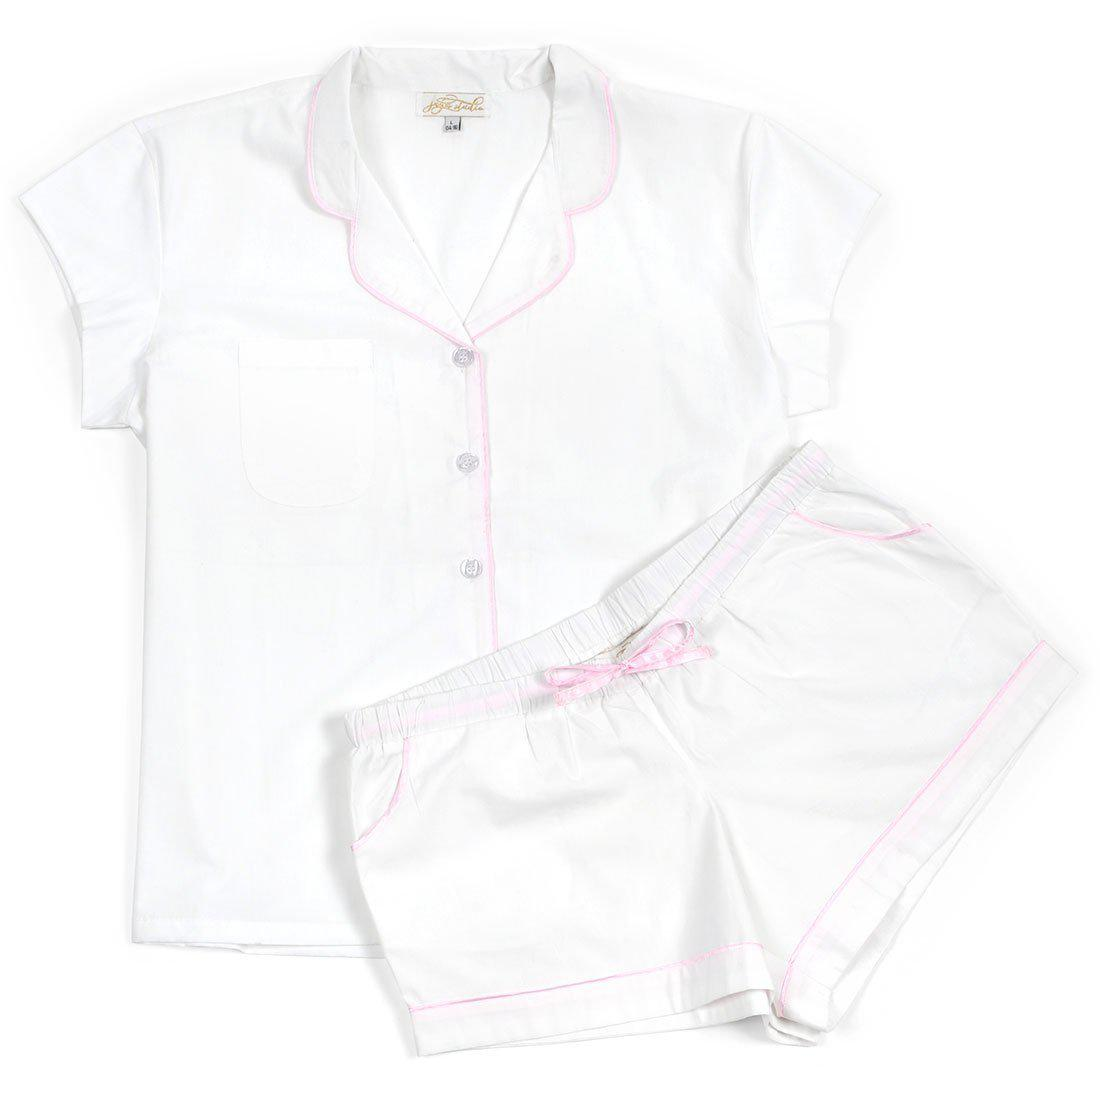 White Cotton Poplin Summer Pajama Set - The Preppy Bunny